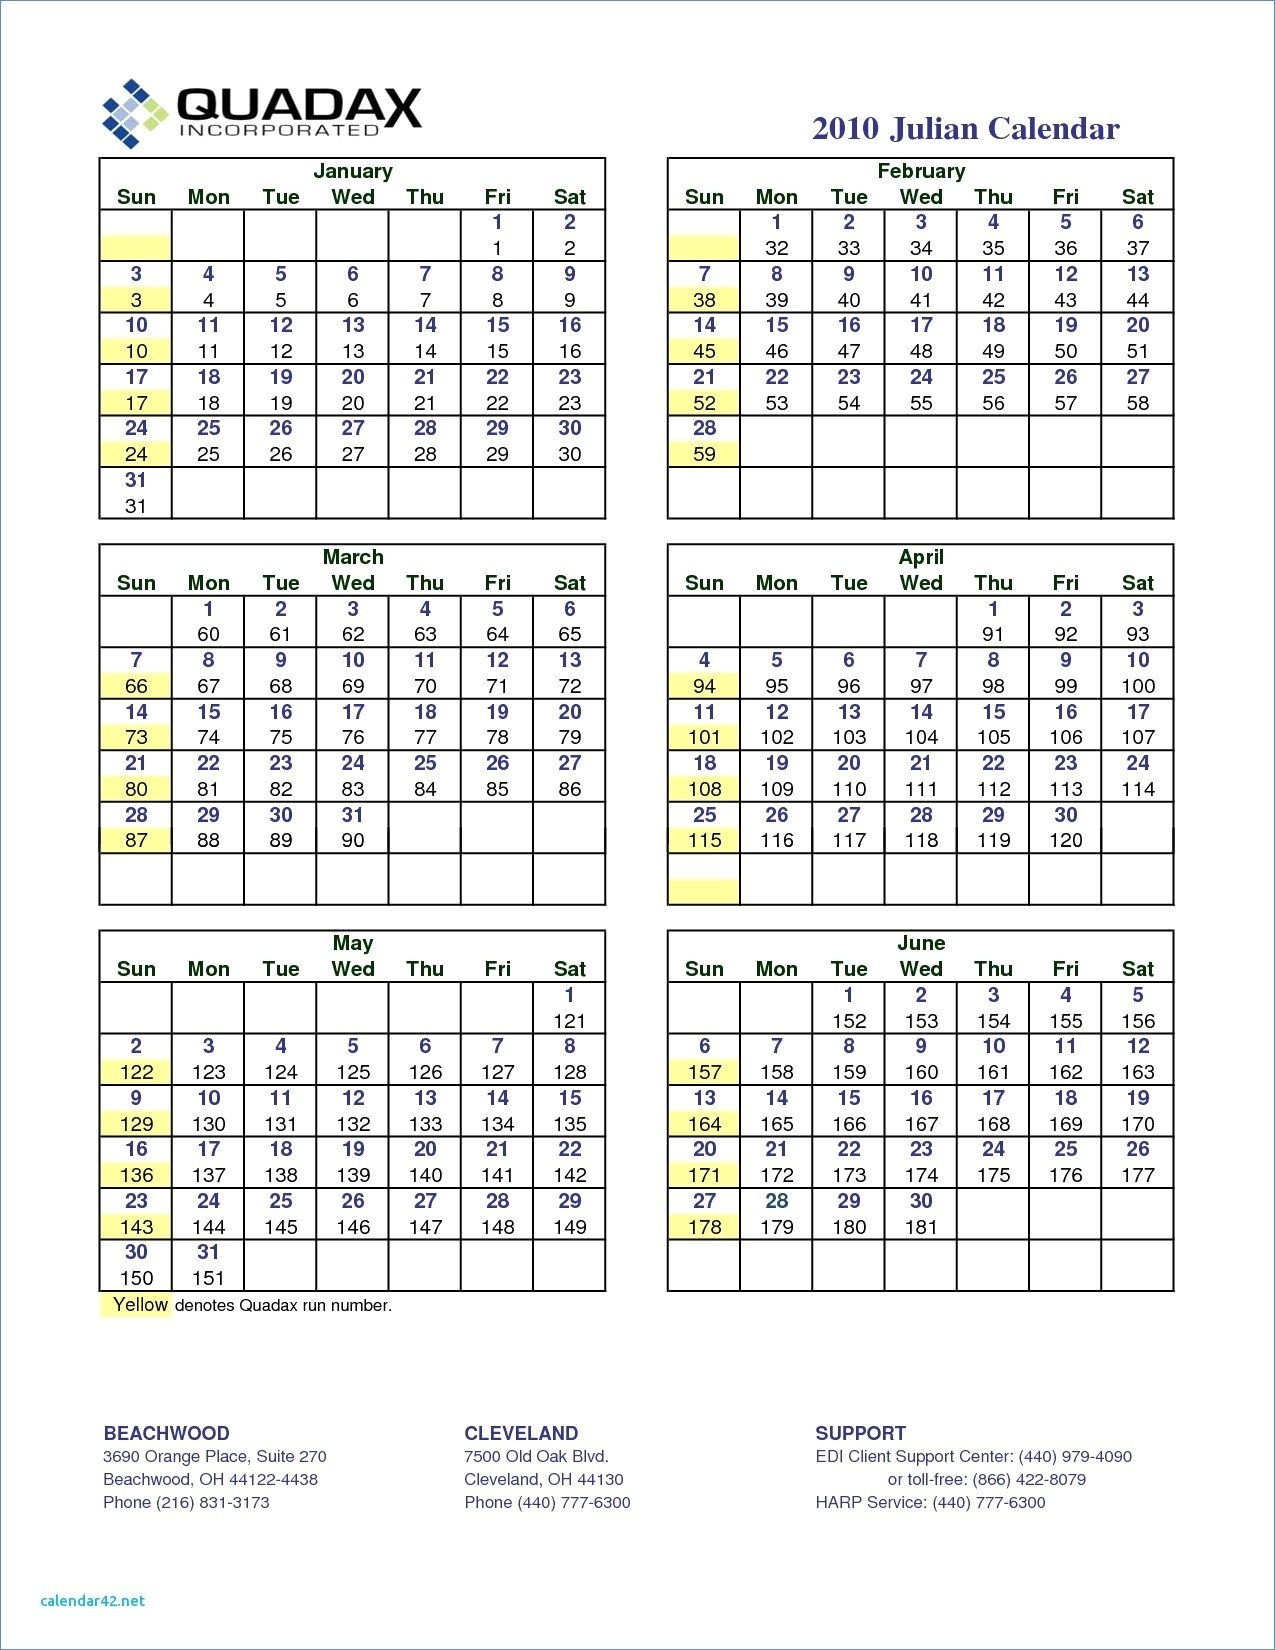 Quadax Julian Date Calendar 2018 Printable Template For Year 2 pertaining to 118 Day Of The Year Julian